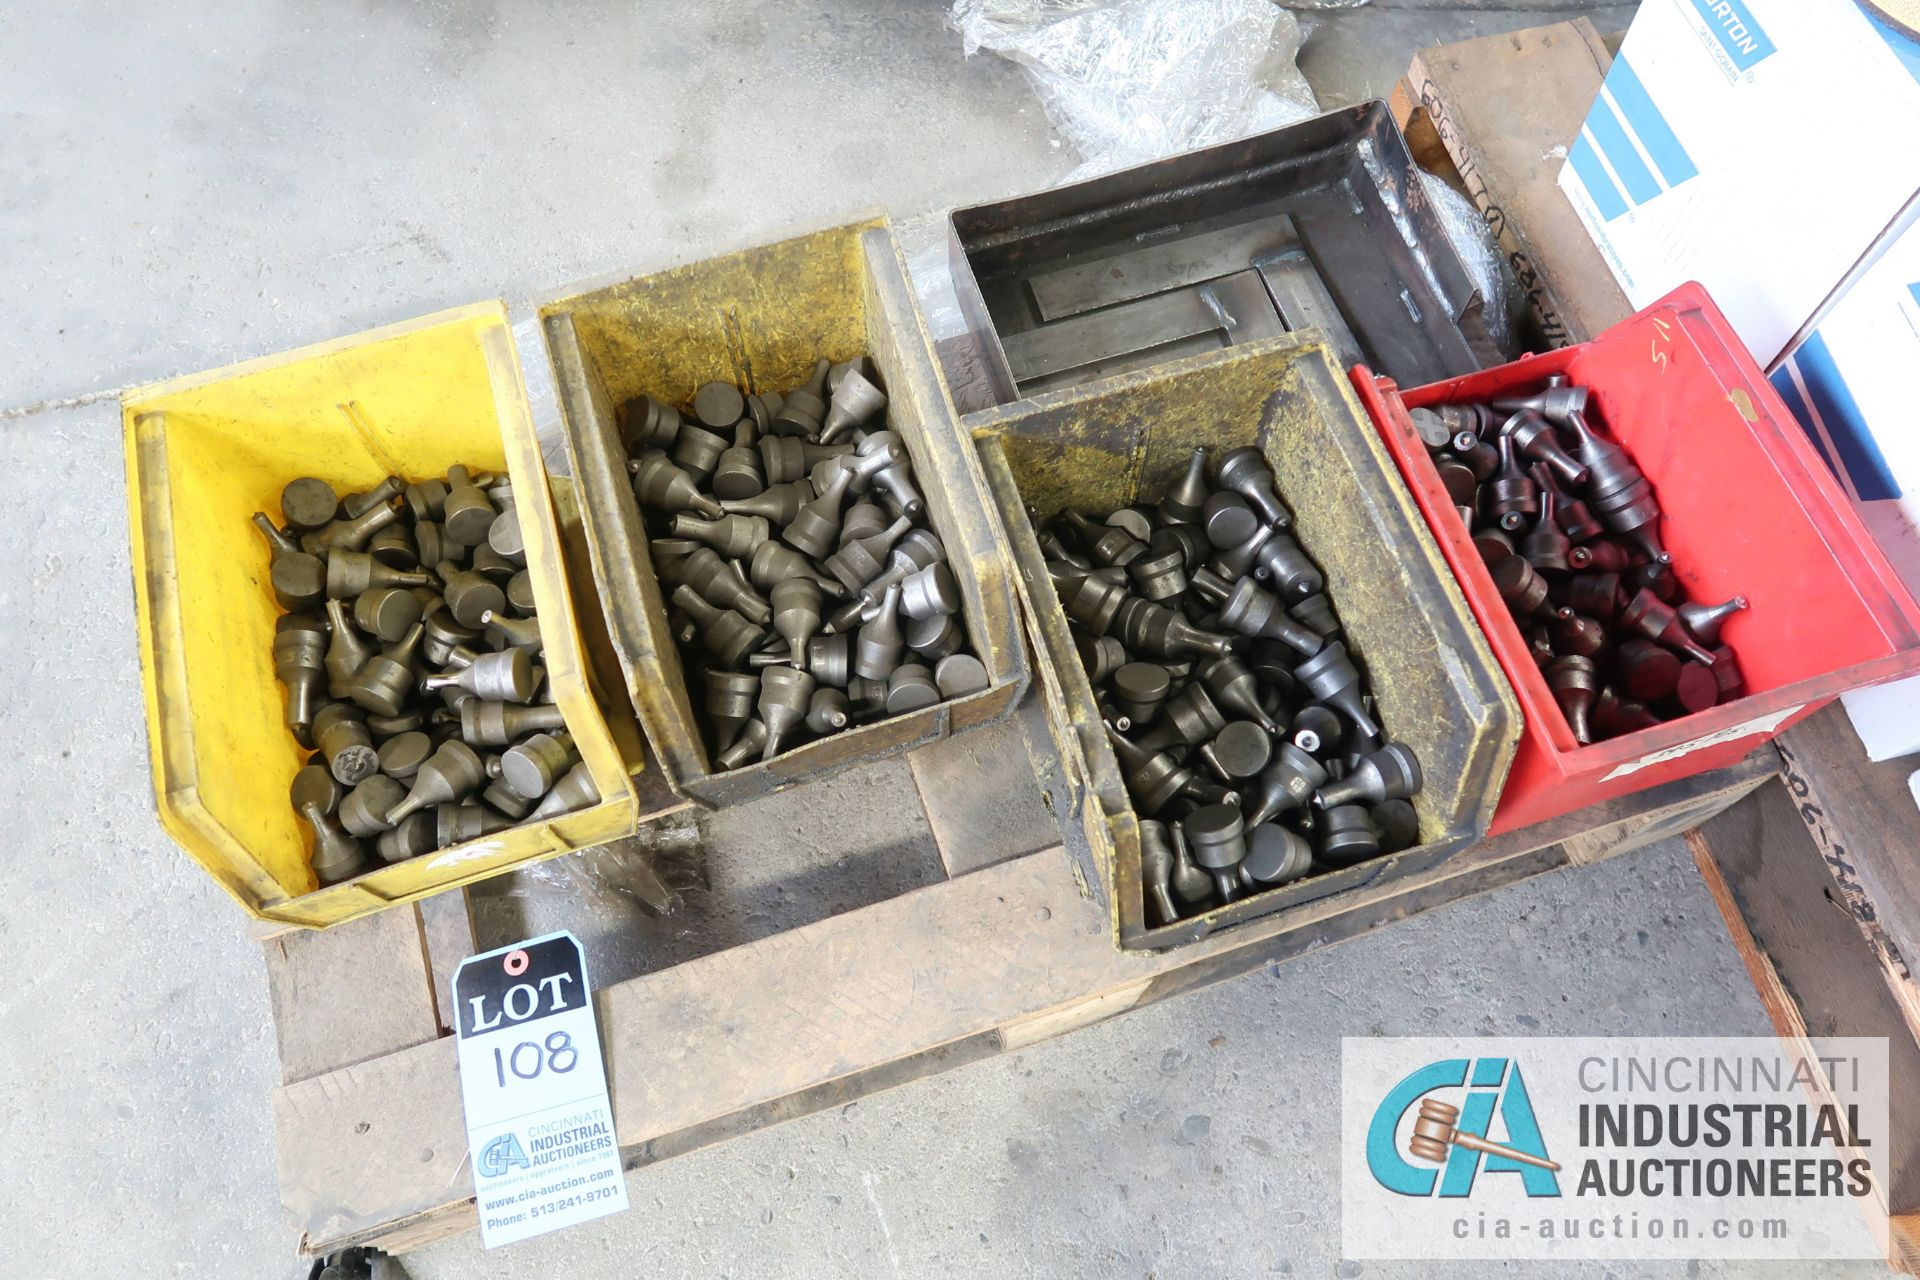 TUBS MISCELLANEOUS IRONWORKER PUNCH TOOLING